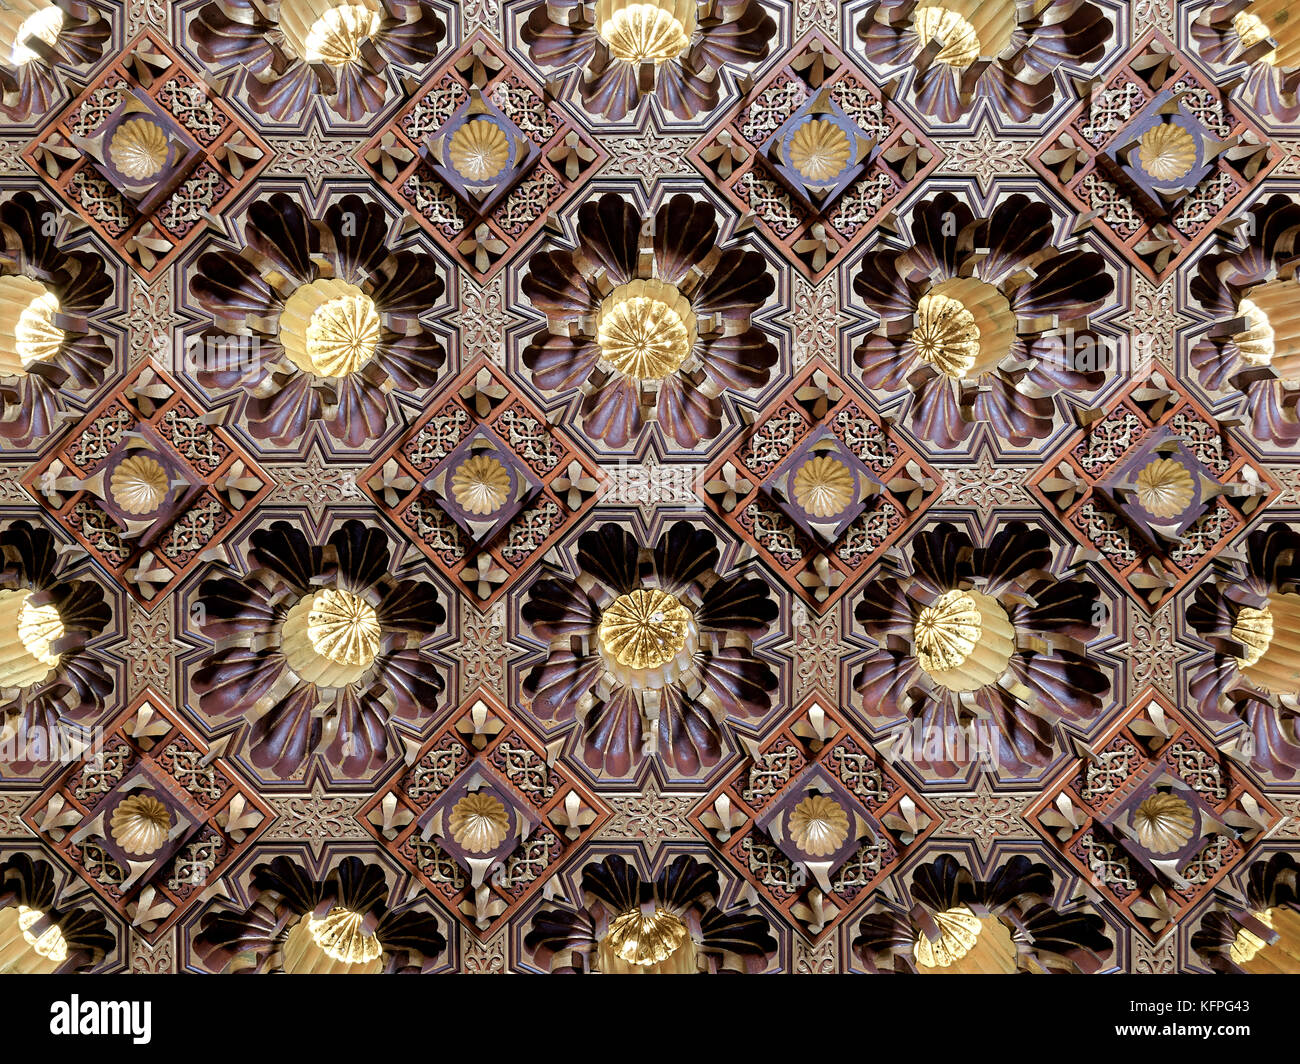 Wooden golden ceiling at the public mosque of Manial Palace of Prince Mohammed Ali Tawfik, Cairo, Egypt - Stock Image